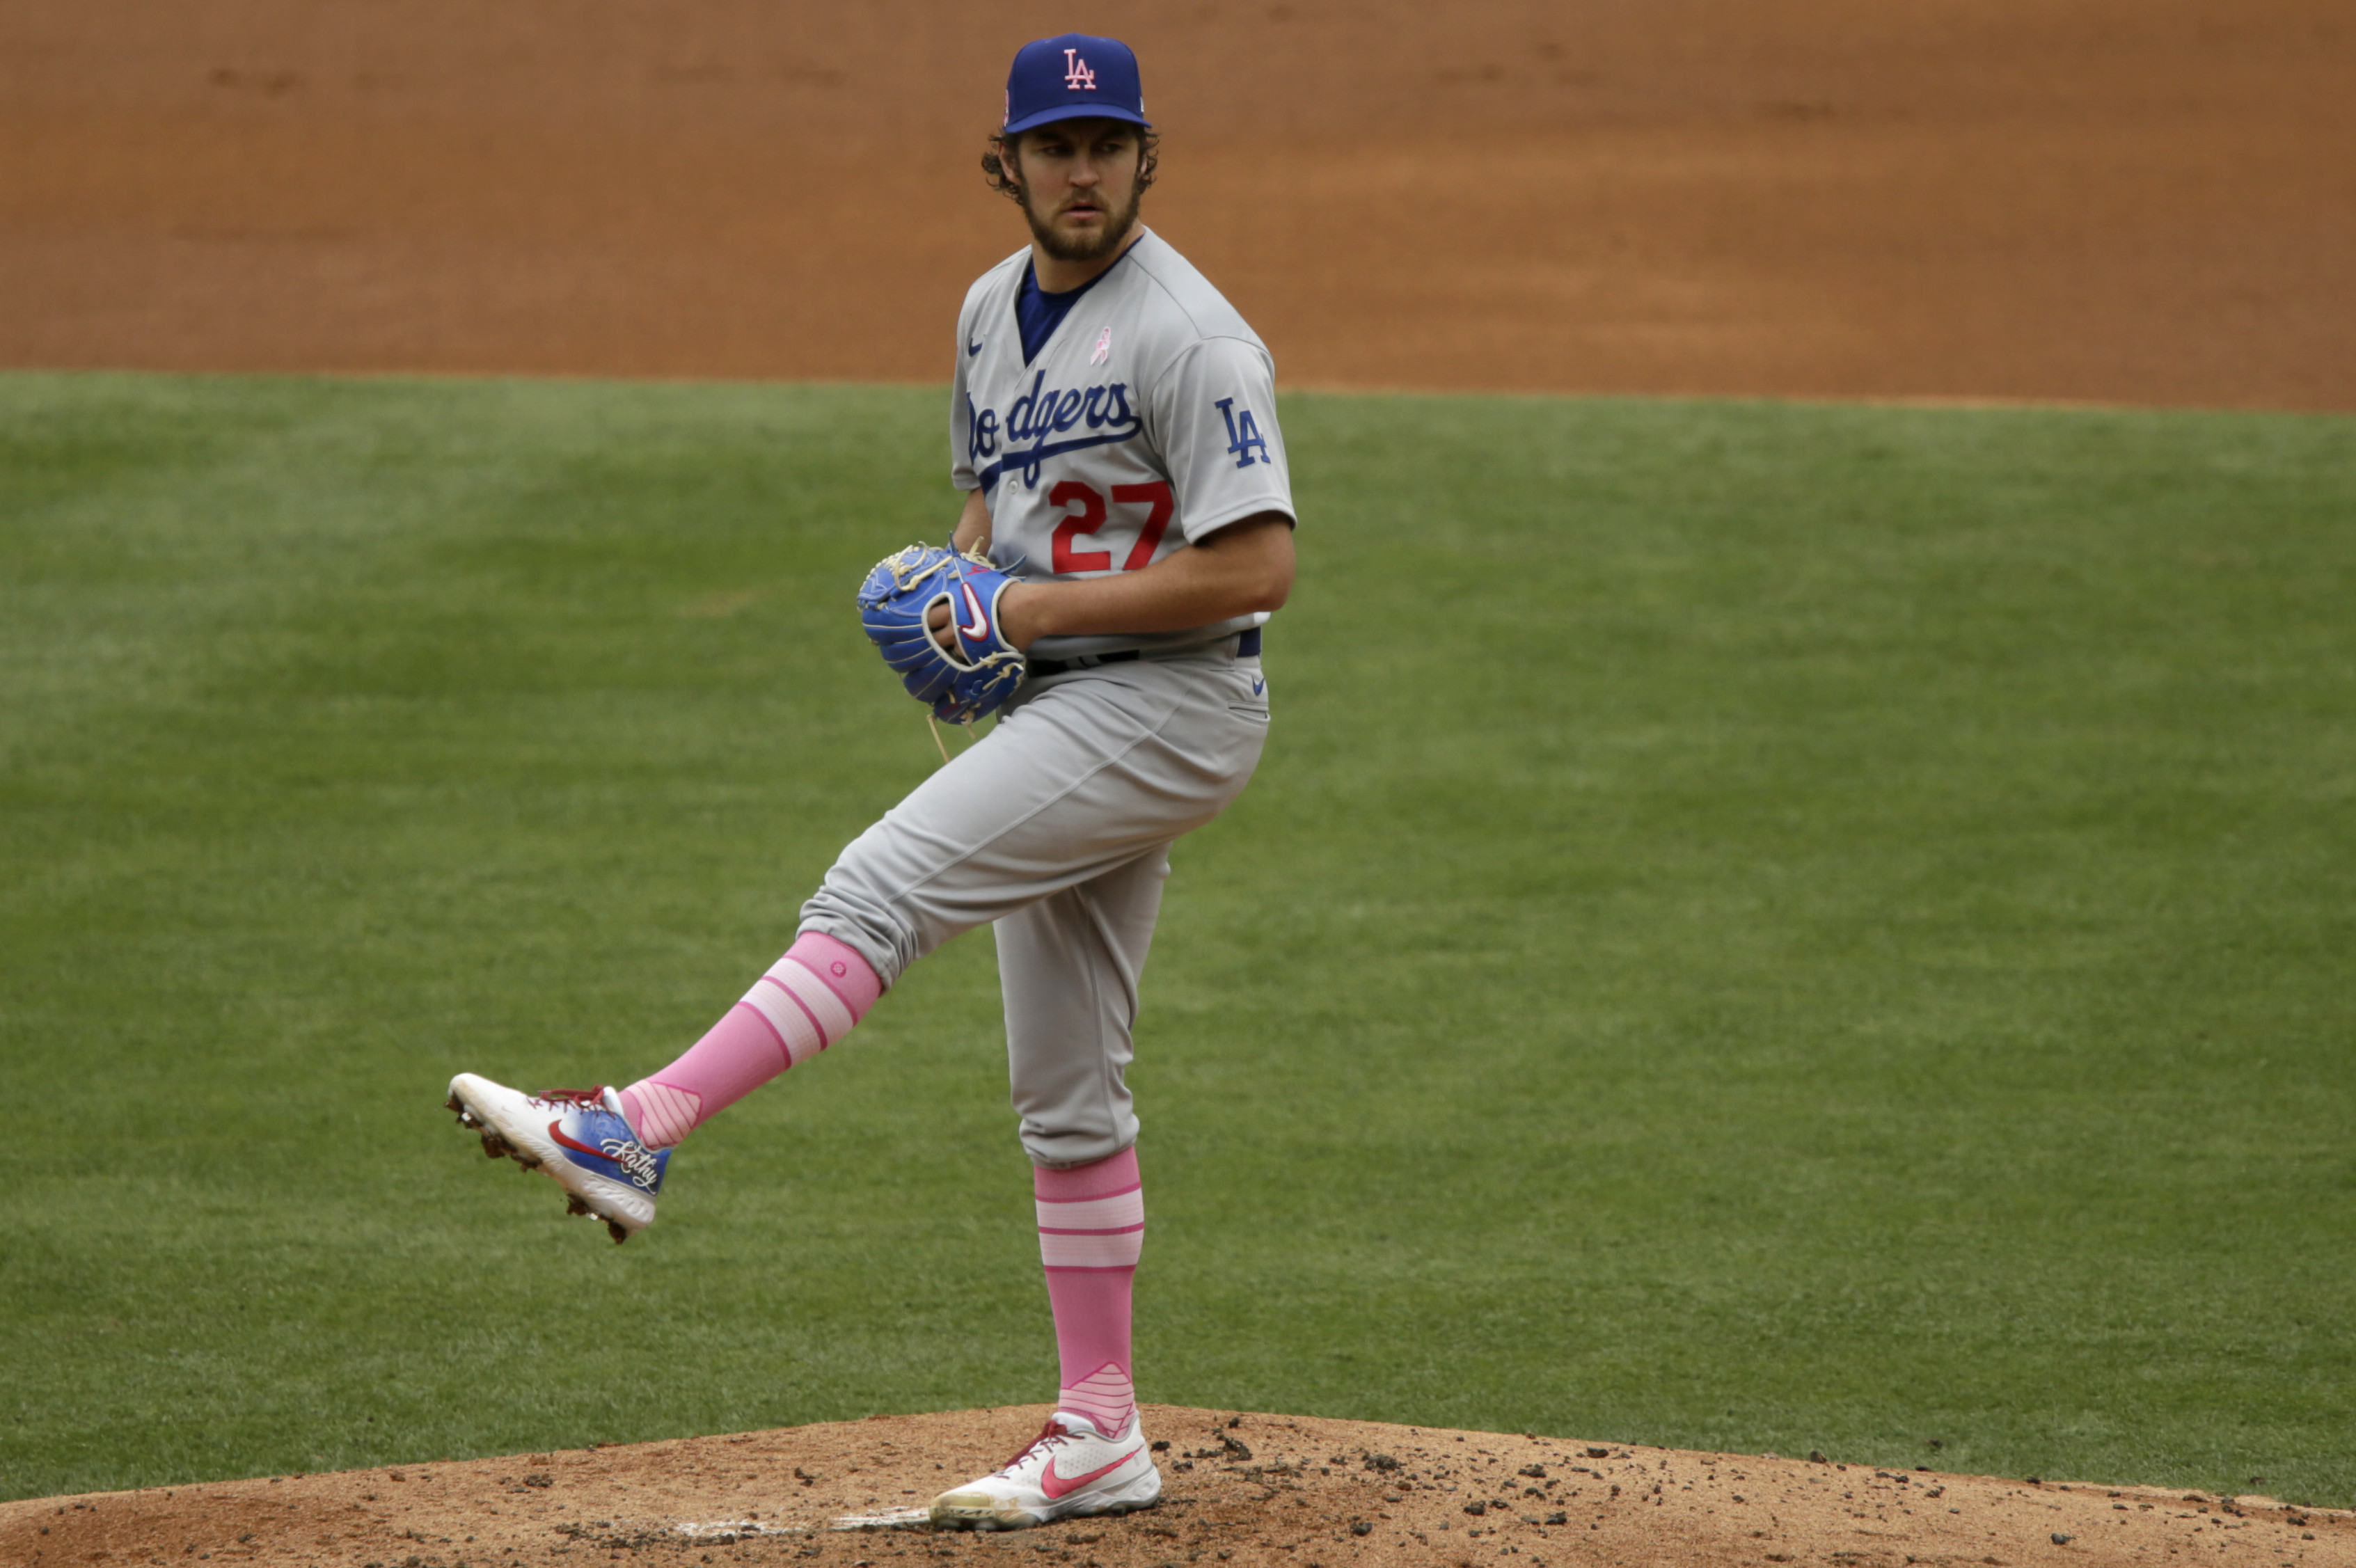 Report: MLB Wants to Talk to Dodgers' Trevor Bauer, Woman in Sexual Assault Case